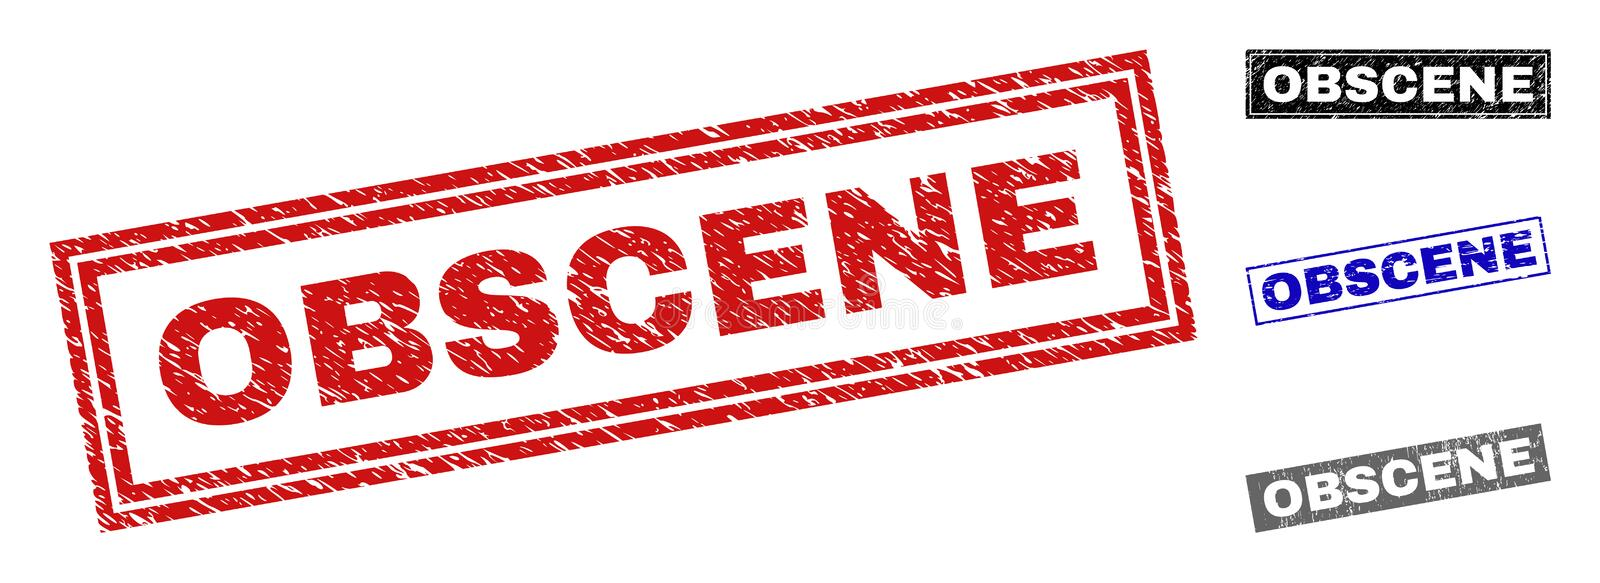 Grunge OBSCENE Scratched Rectangle Watermarks. Grunge OBSCENE rectangle stamp seals isolated on a white background. Rectangular seals with distress texture in stock illustration